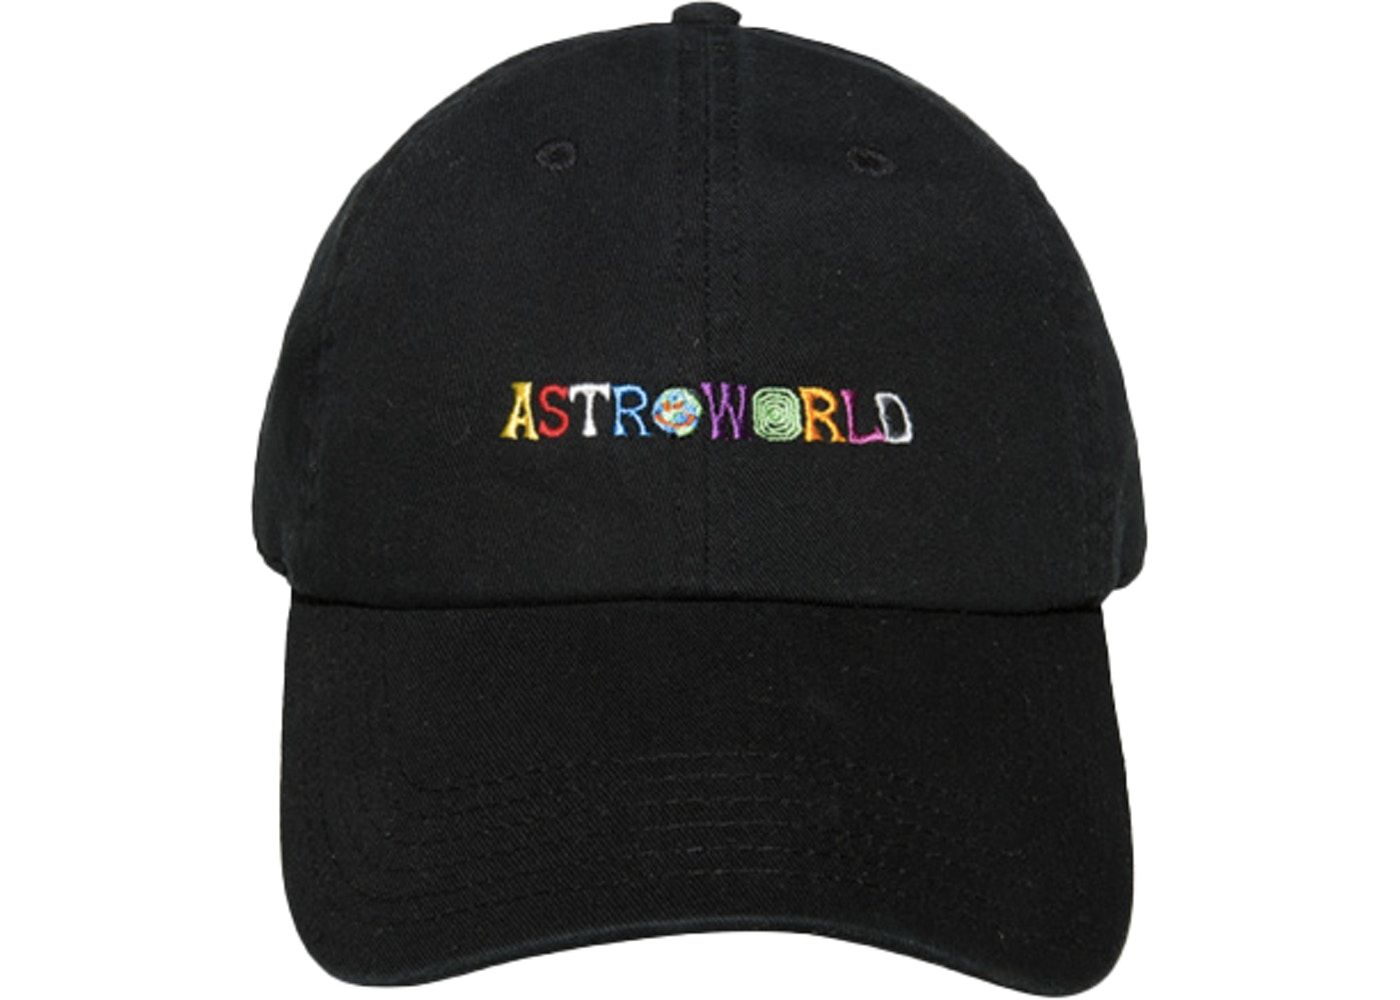 215f9bbe Check out the Travis Scott Astroworld Hat Black available on StockX